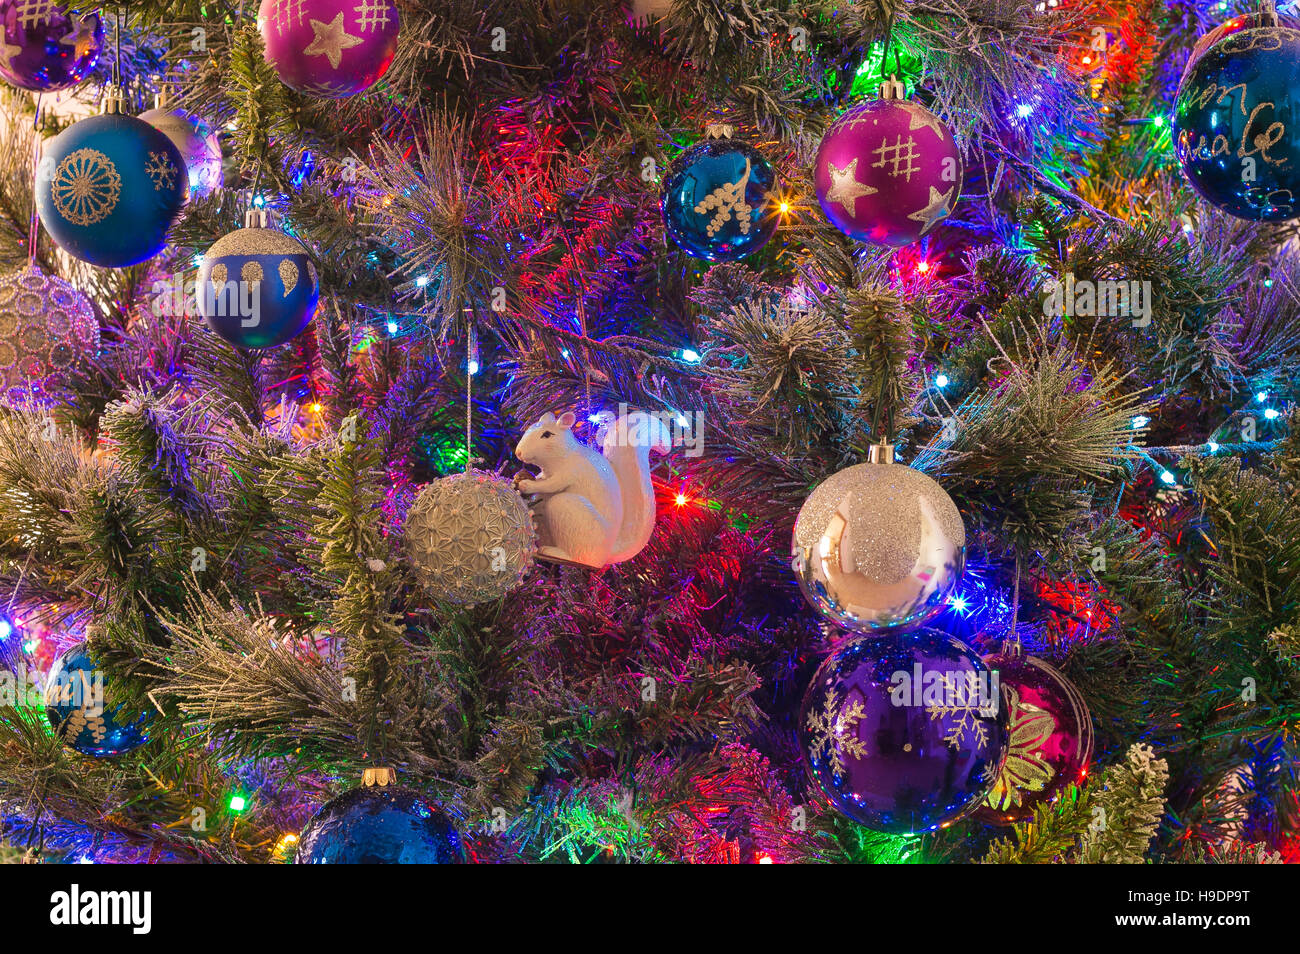 Detail of beautiful christmas tree with decorations and lights - Stock Image